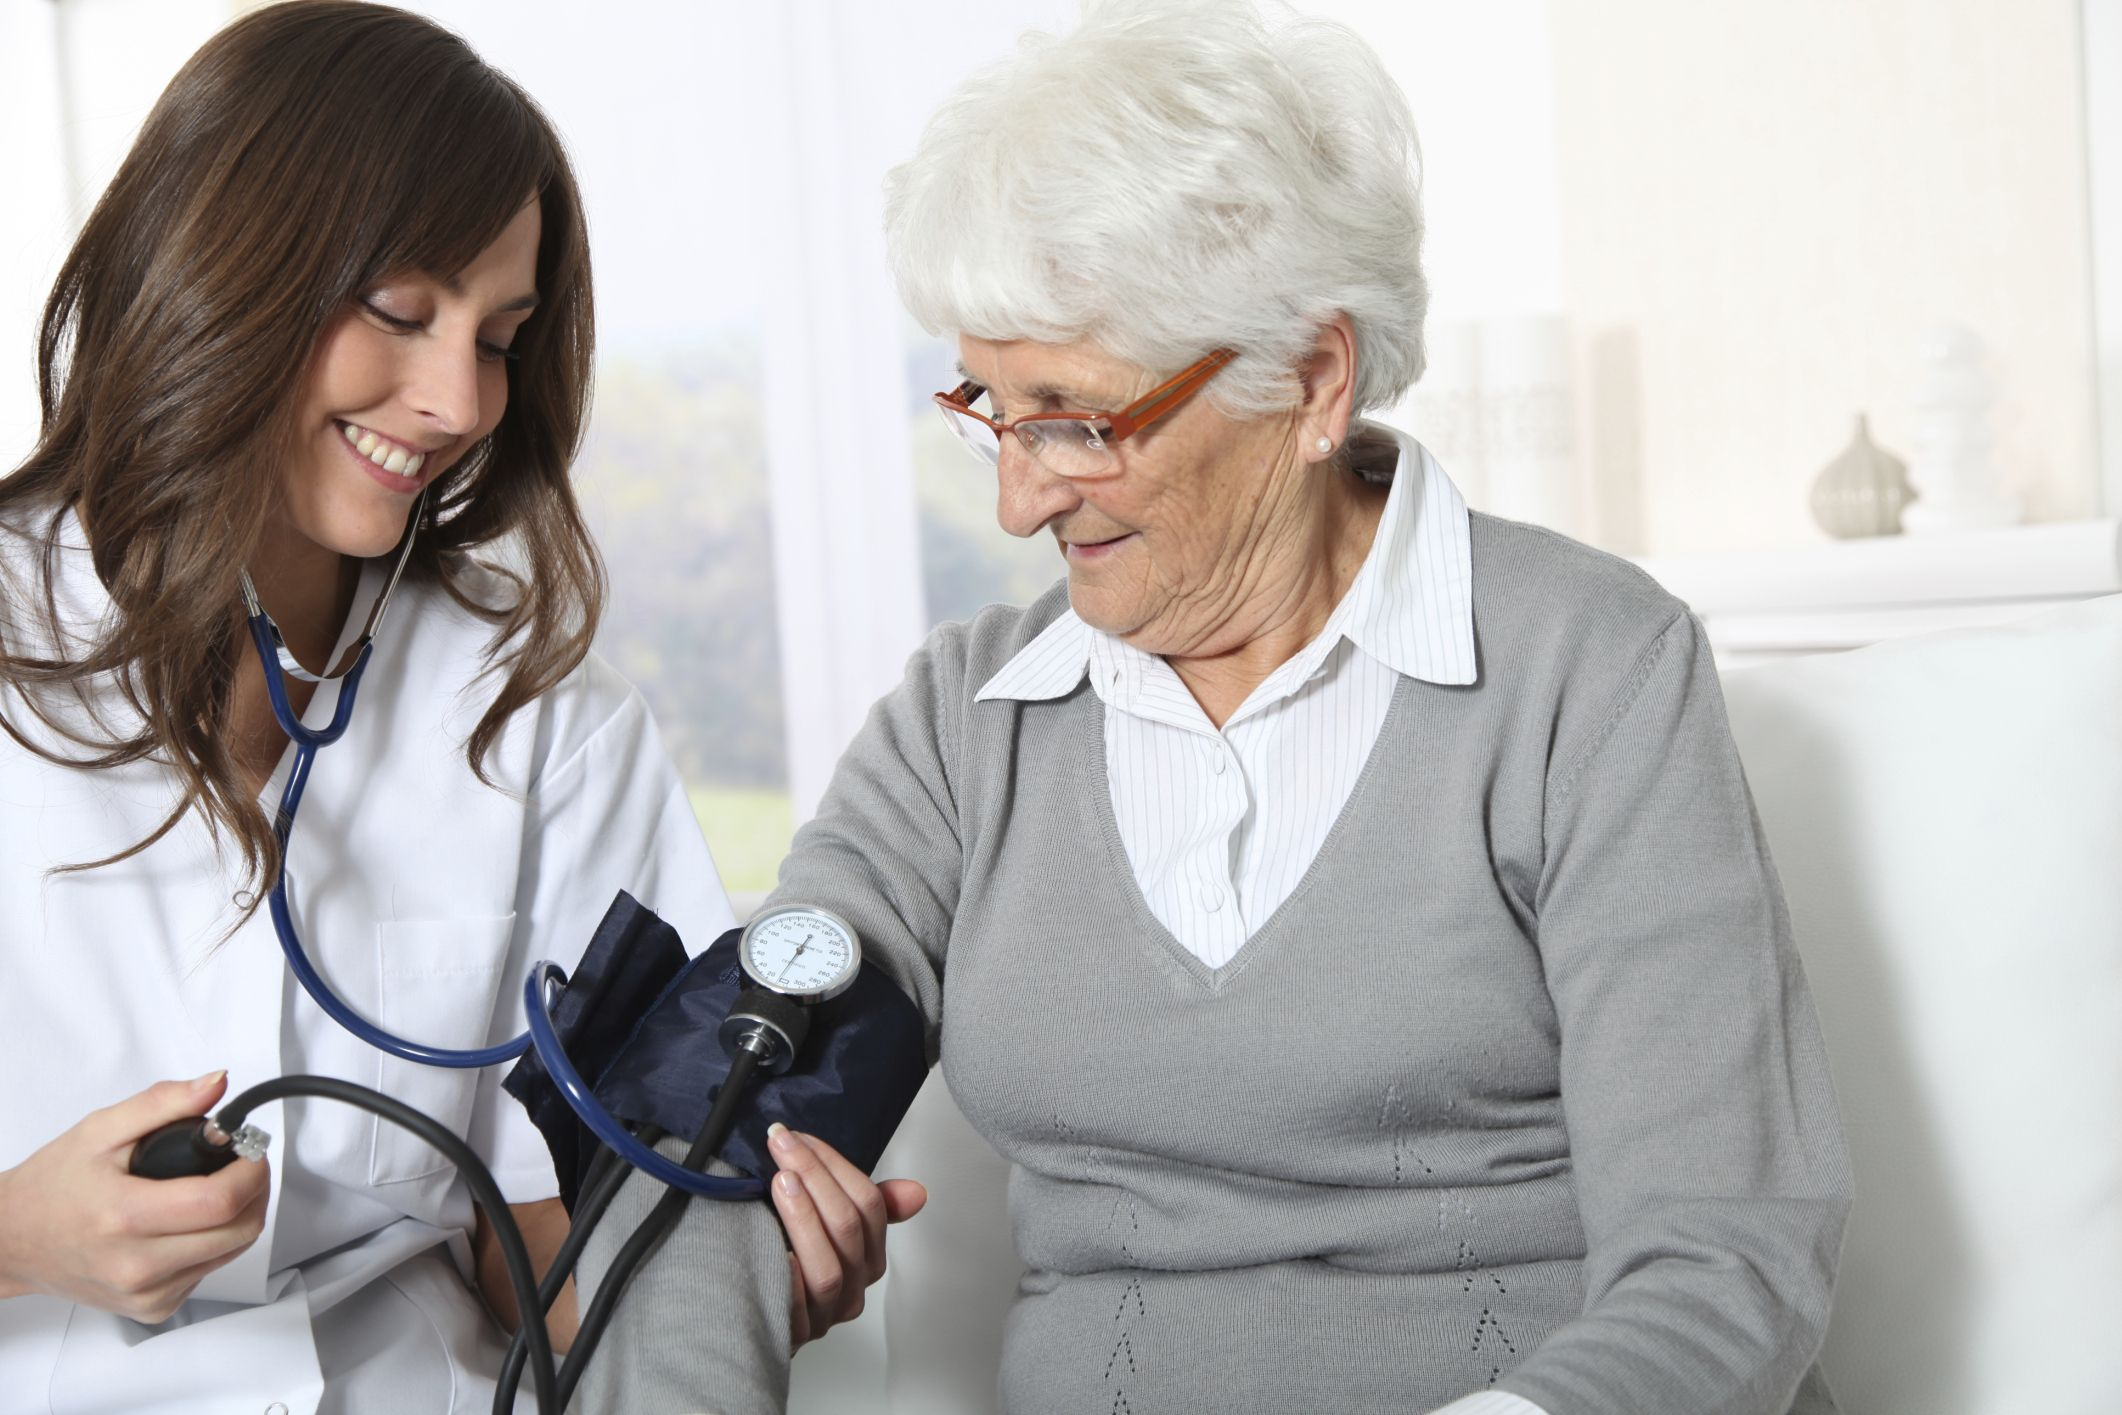 Causes of Error in Measuring Blood Pressure Home health